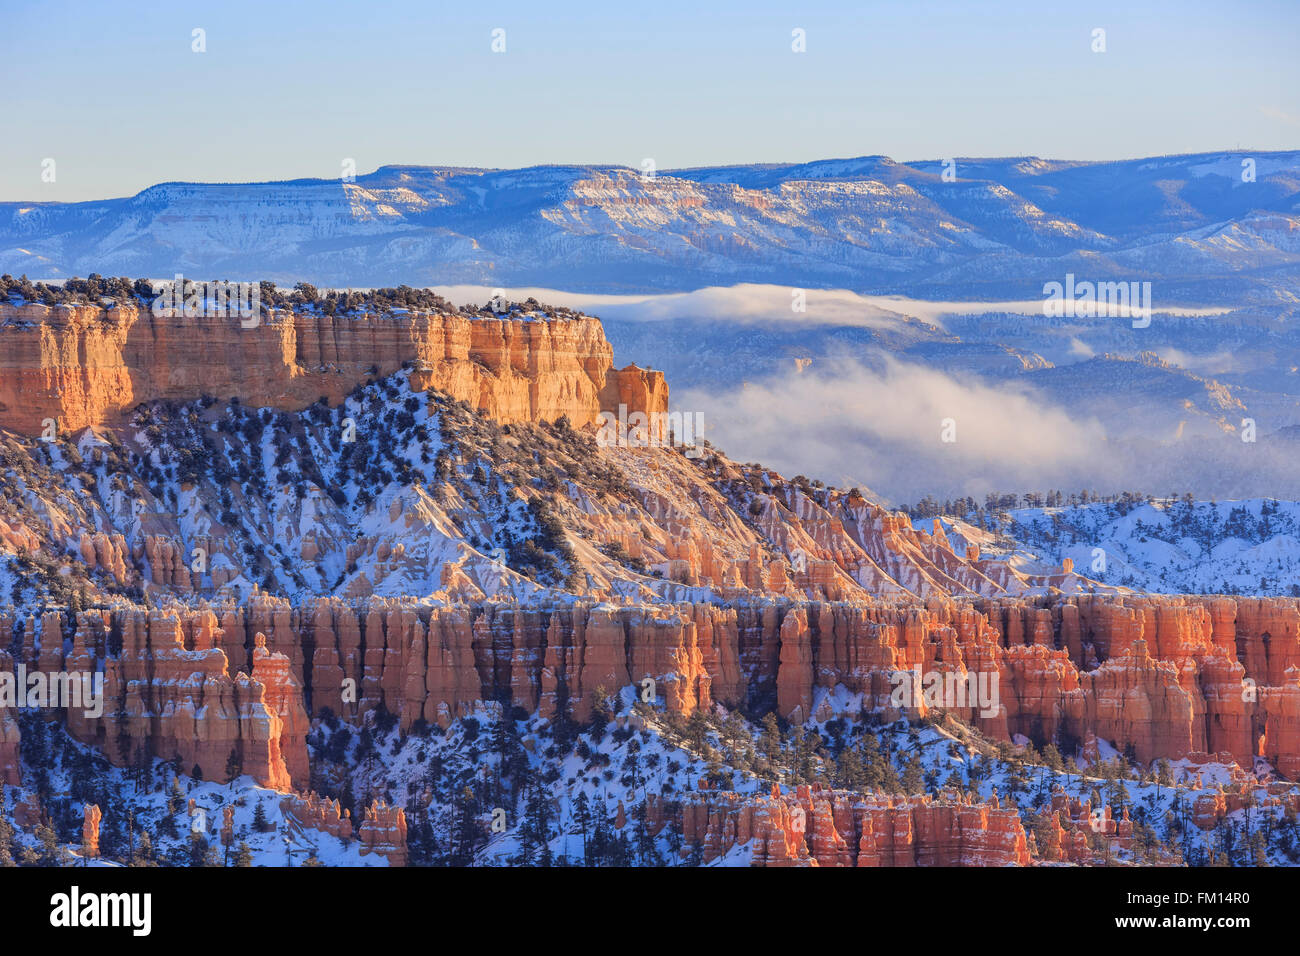 Superb view of Sunrise Point, Bryce Canyon National Park at Utah - Stock Image